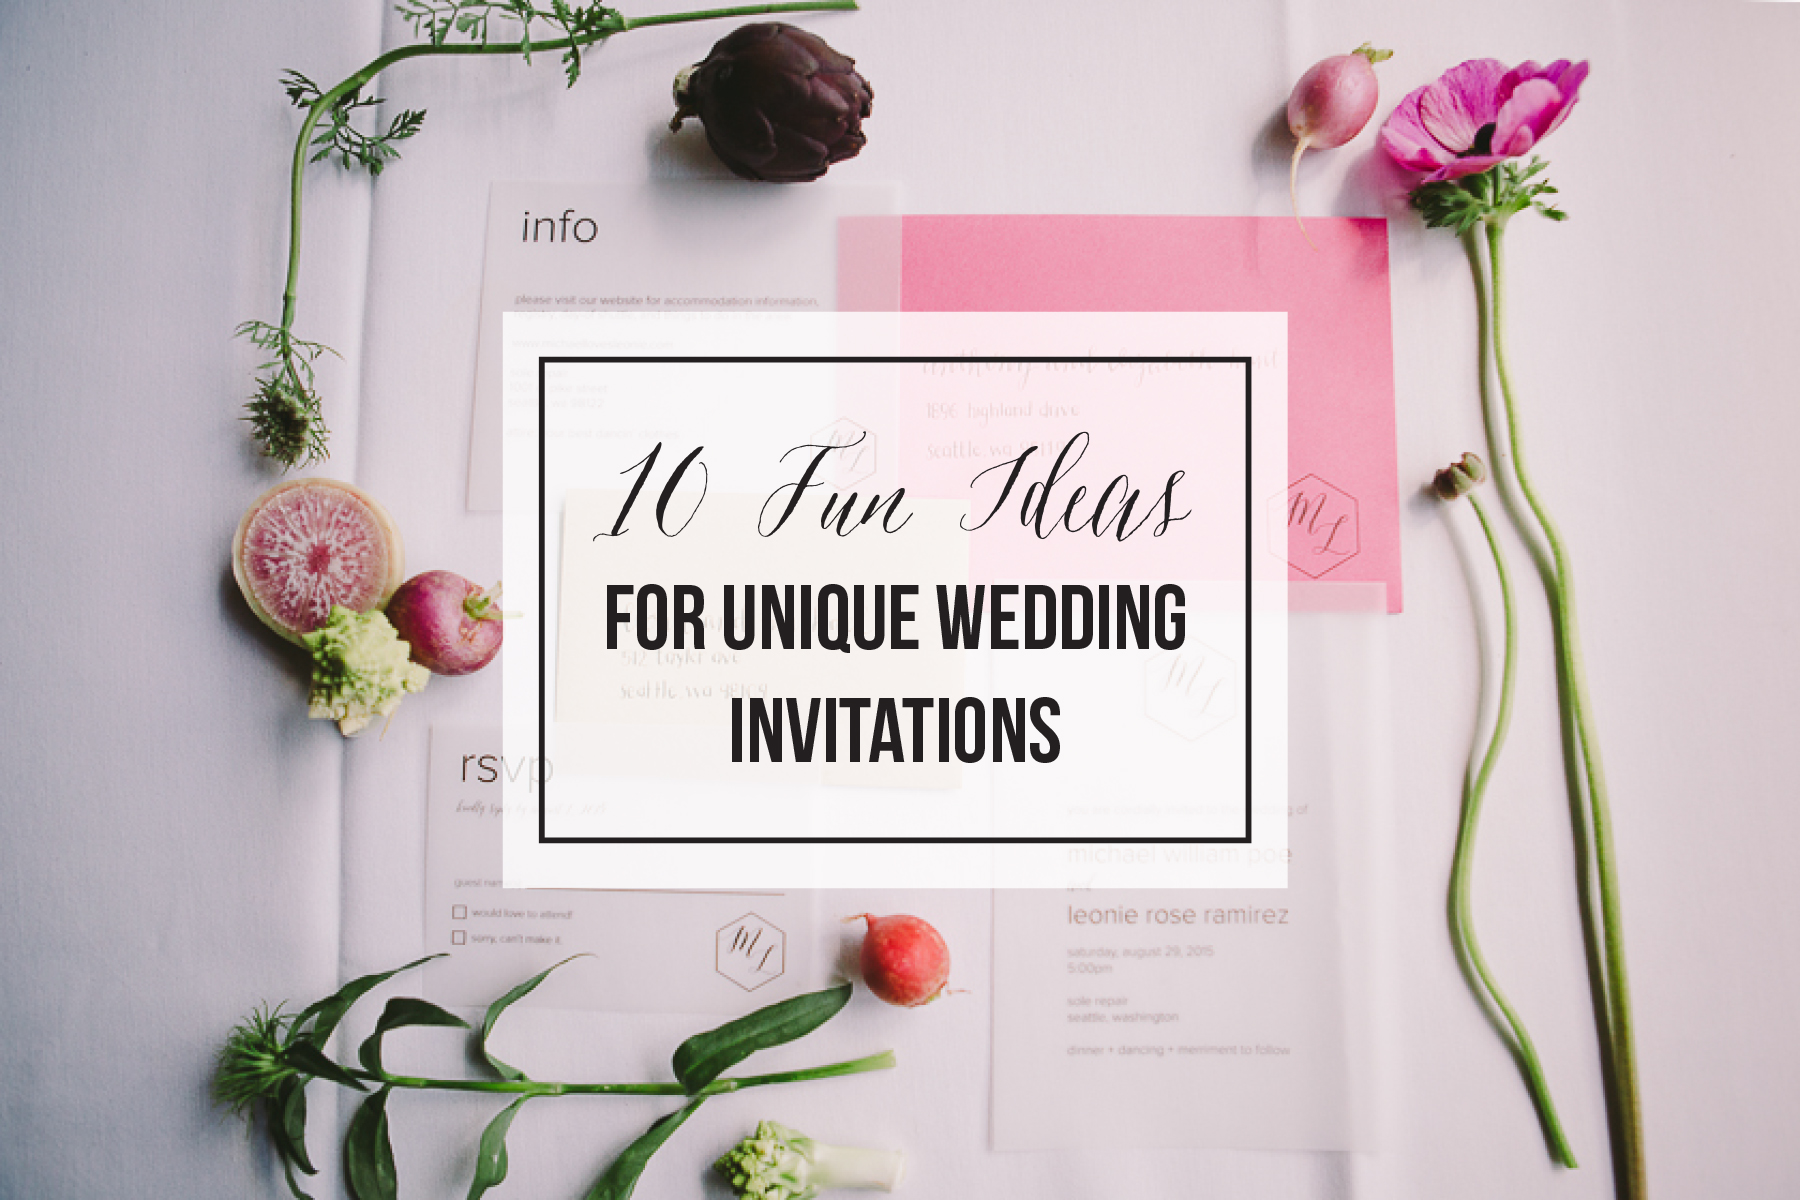 10 Fun Ideas for Unique Wedding Invitations